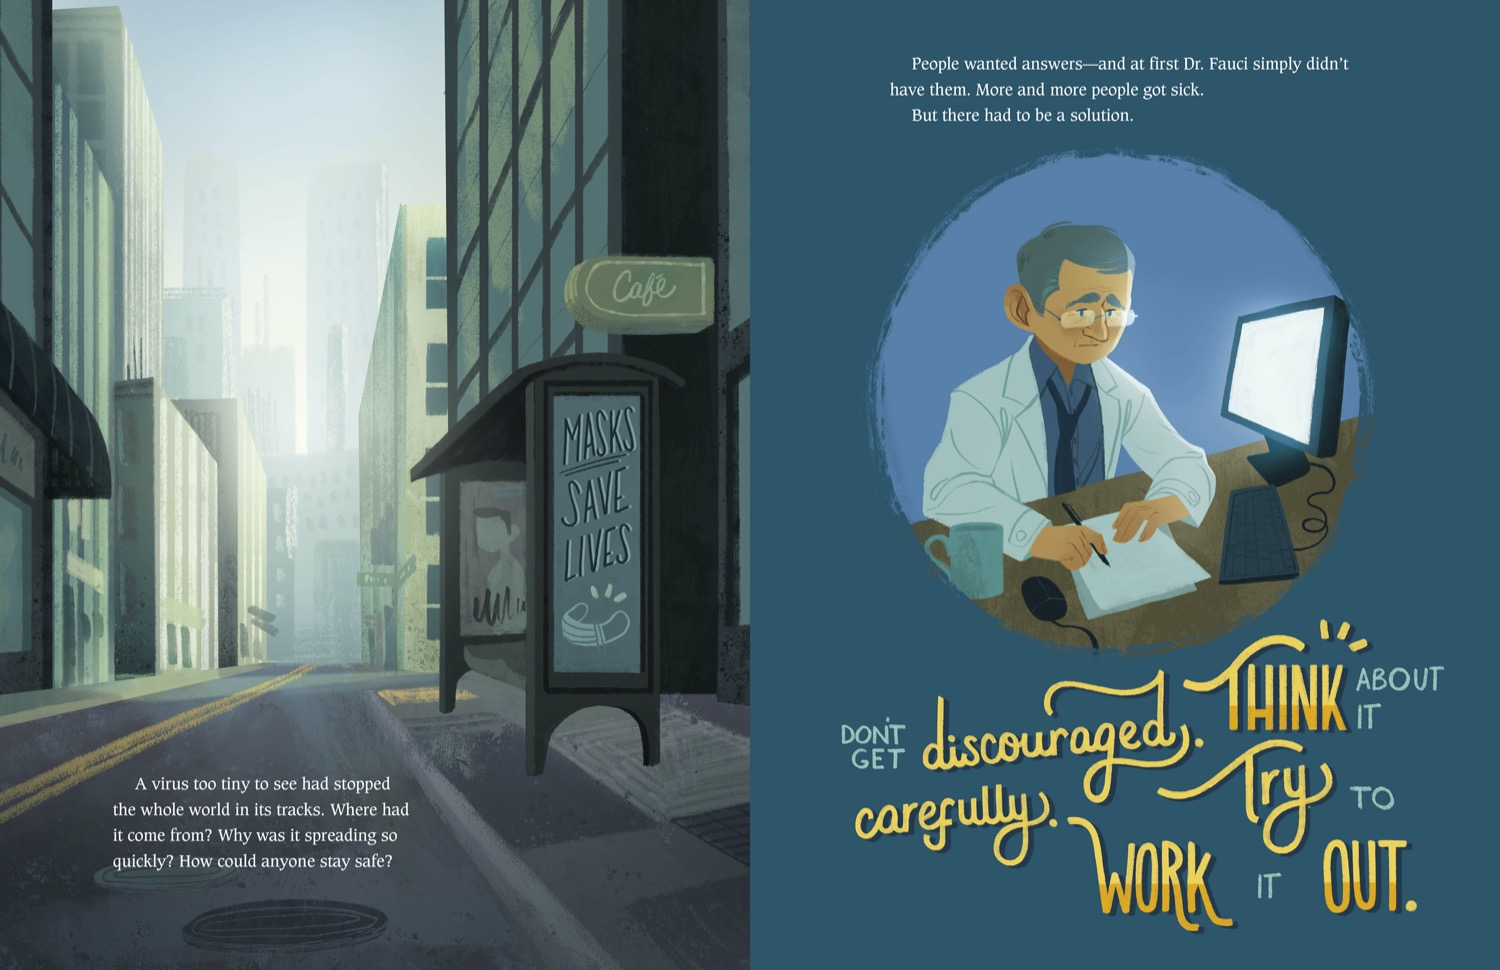 """a two page spread in color and illustrated from a book. on the left page is an empty city street with a bus stop with a sign that reads """"masks save lives"""" on the bottom left corner of the page, the text reads """"a virus too tiny to see had stopped the whole world in its tracks. where had it come from? why was it spreading so quickly? how could anyone stay safe?"""" on the right page, is a doctor isolated in a circle. he's writing pn a paper and looking at a computer screen. at the top of the page the text reads """"people wanted answers—and at first Dr. fauci simply didn't have them. more and more people got sick. but there had to be a solution."""" below the image of the doctor are the words in gold and blue large letters """"don't get discouraged. think about it carefully. try to work it out."""""""